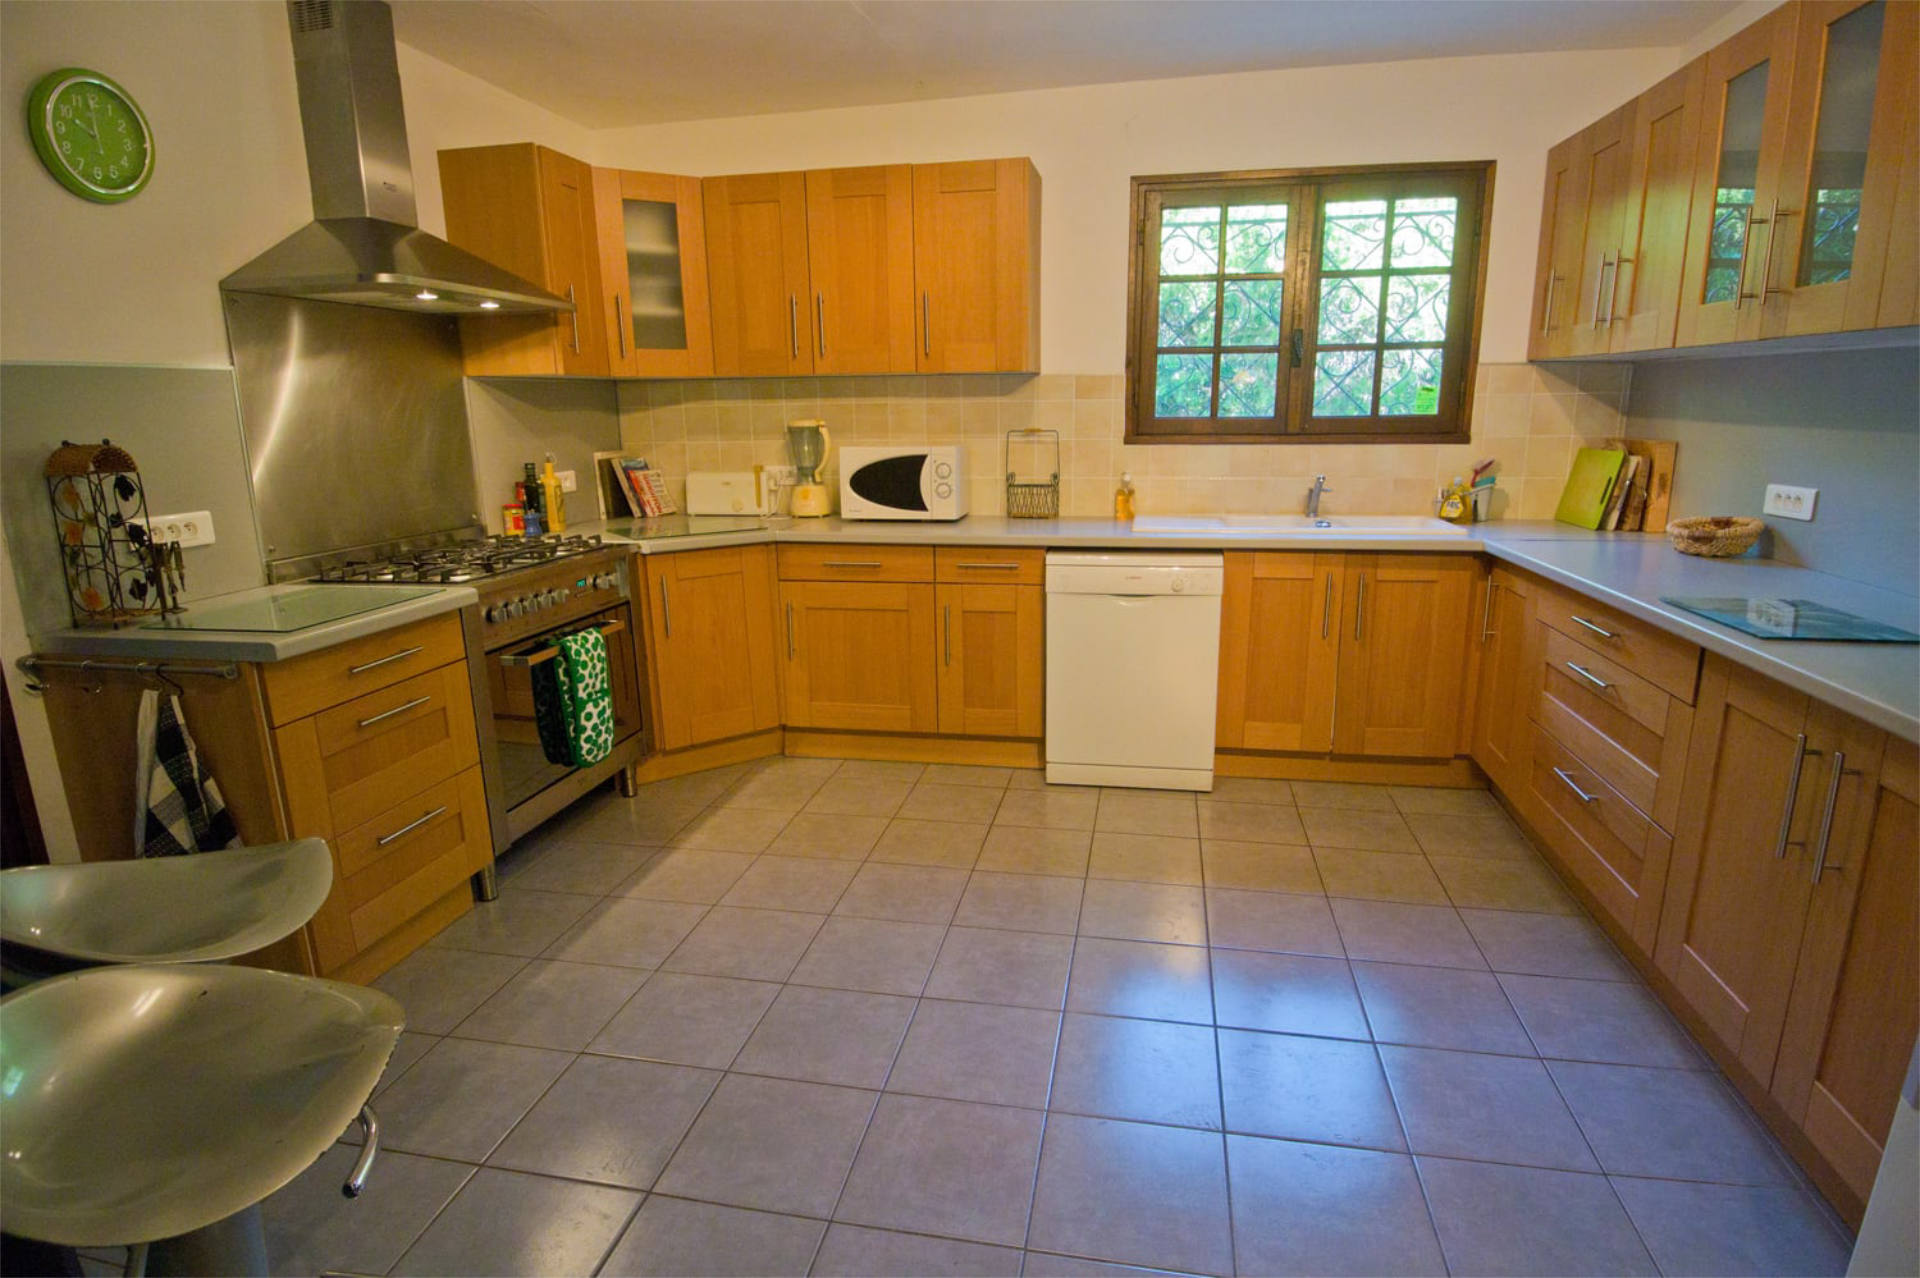 Modern kitchen with dishwasher and other amenities.